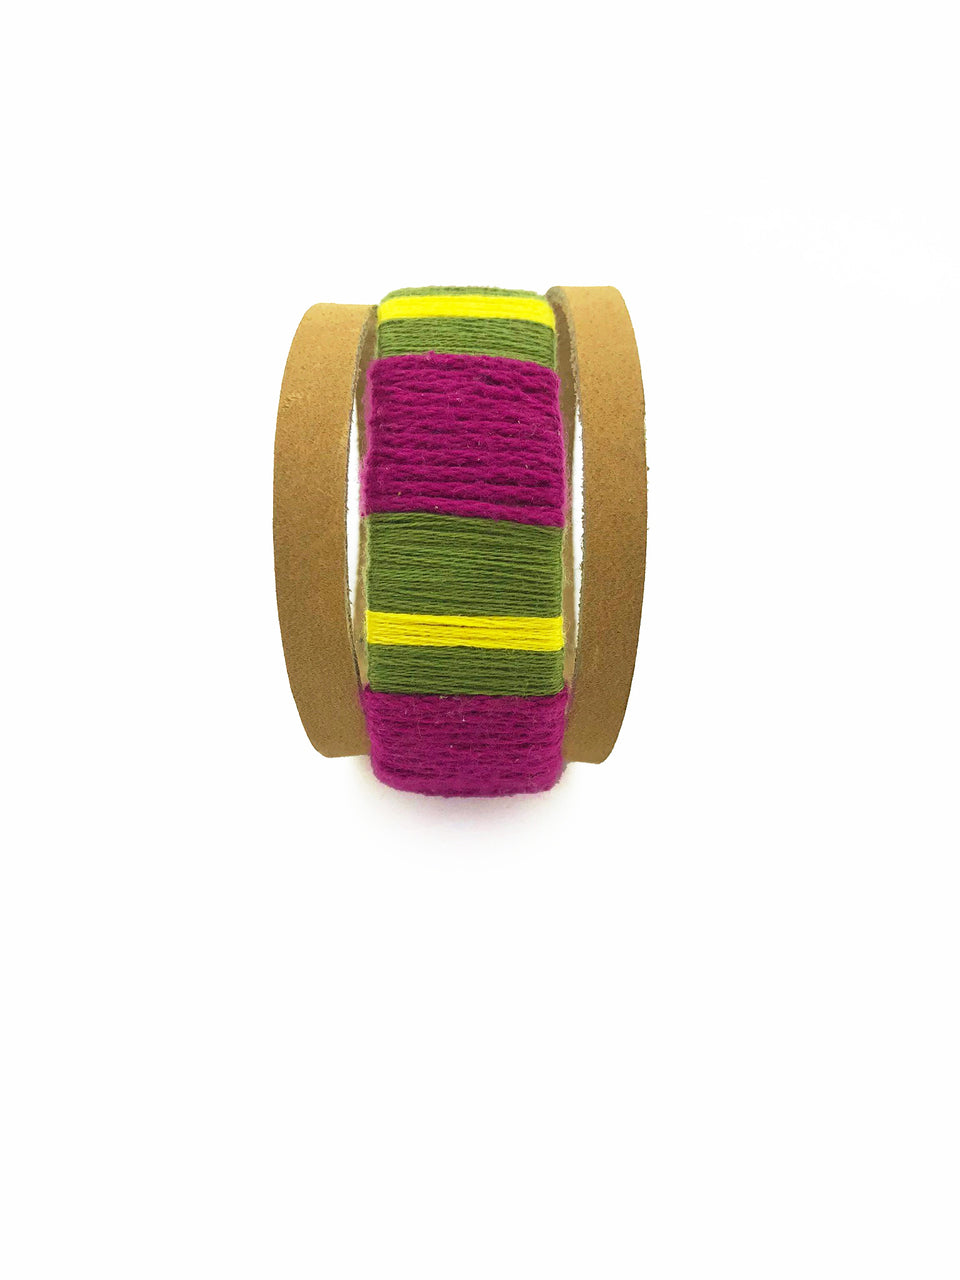 DuHope Threaded Cuff